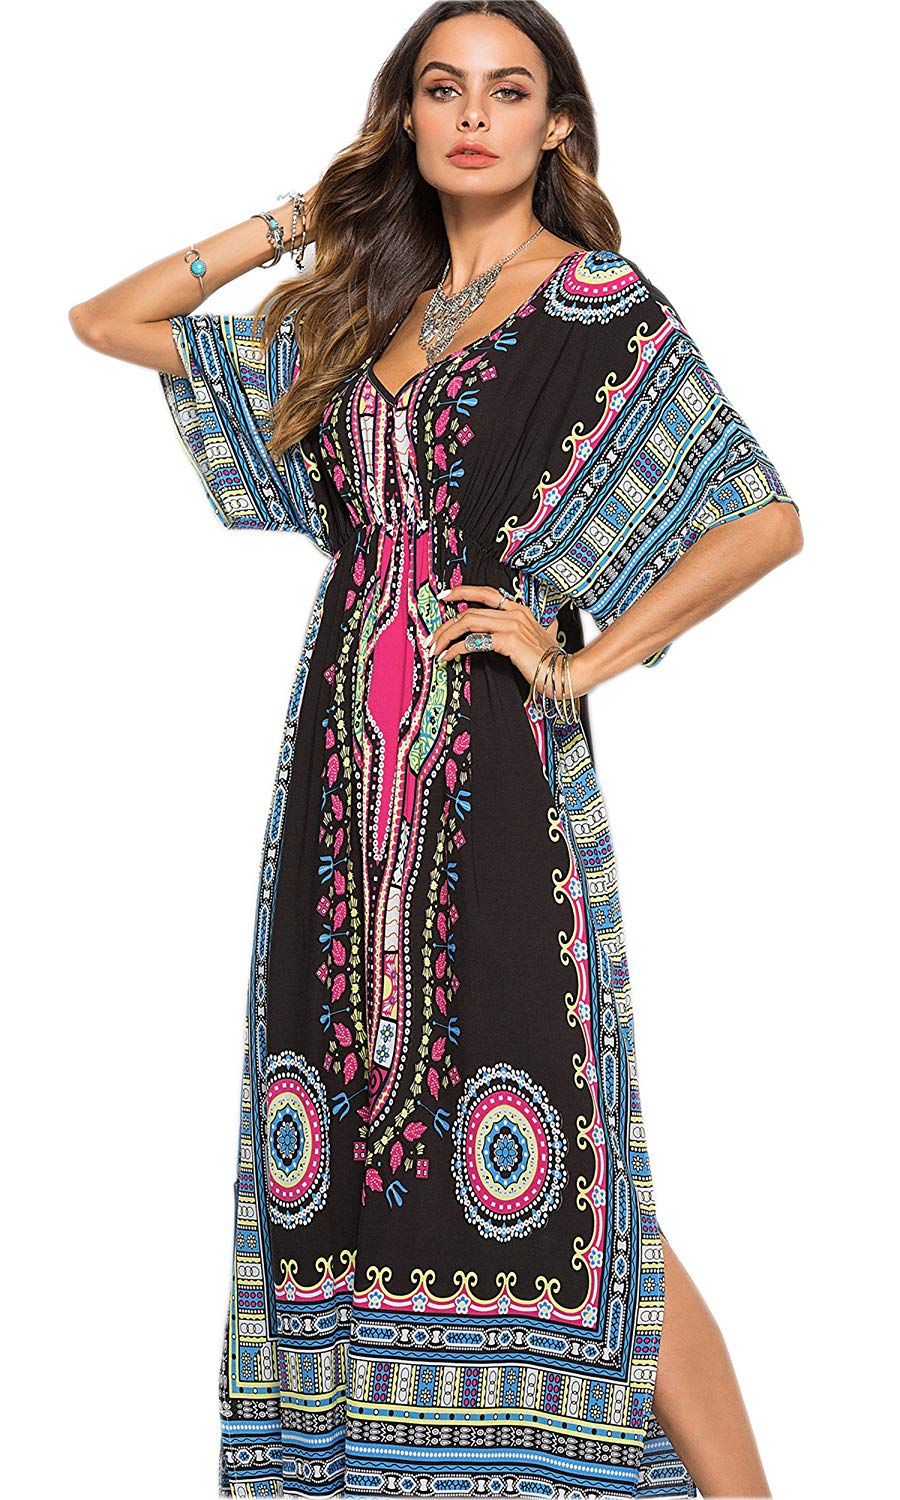 ab302ba562 Get Quotations · EPLAZA Women Long Kaftan Dress Hippy Boho Maxi Caftan  Tunic Dress Night Gown Free Size